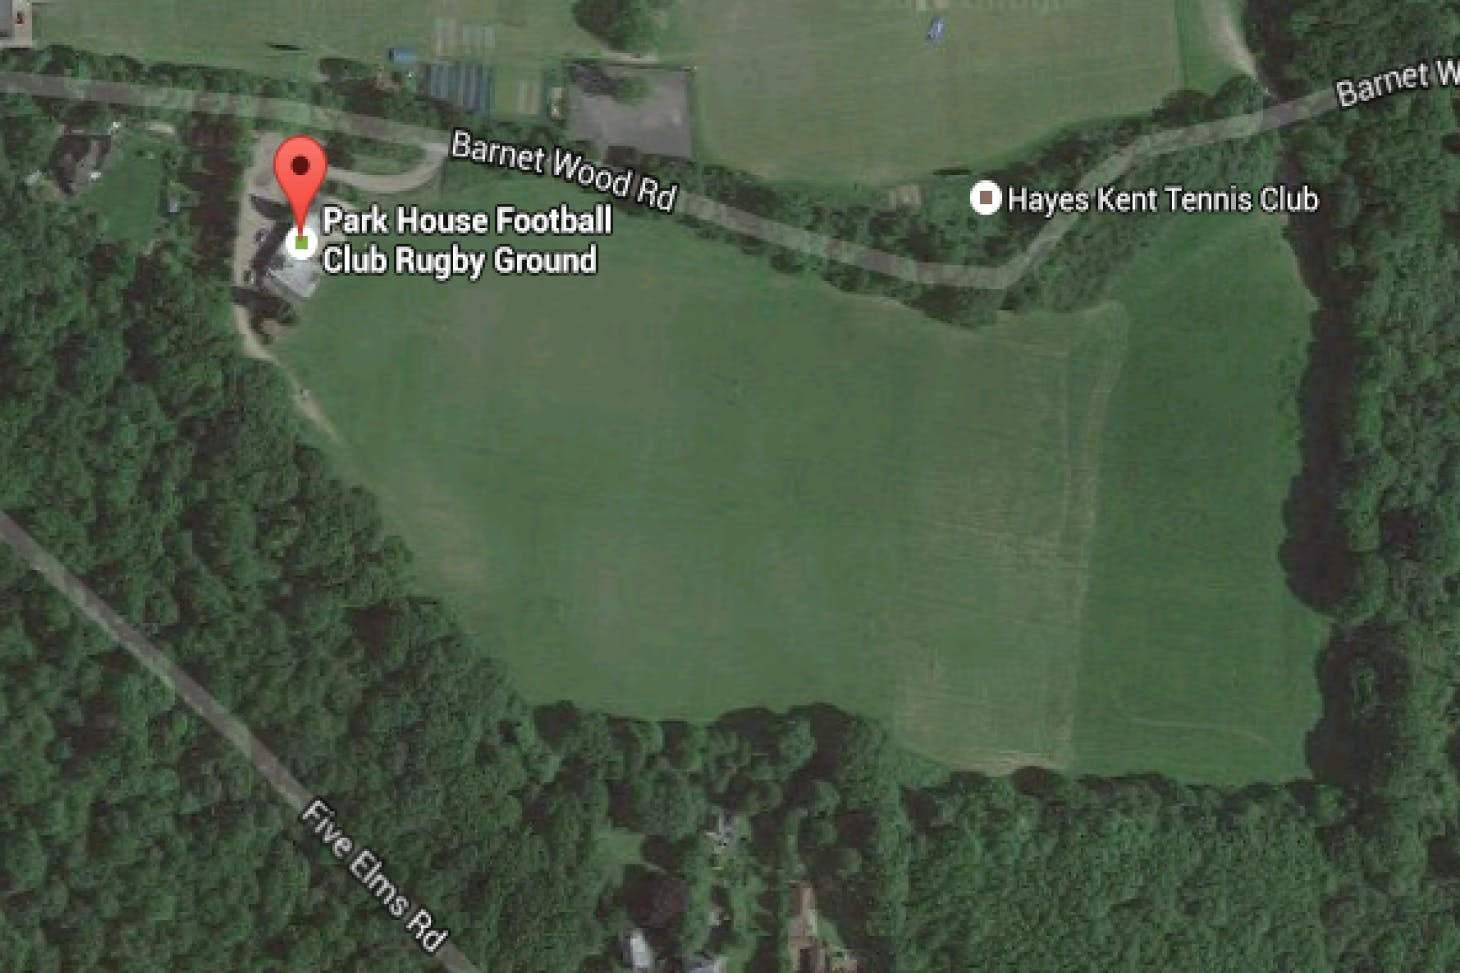 Park House Rugby Football Club 11 a side | Grass football pitch